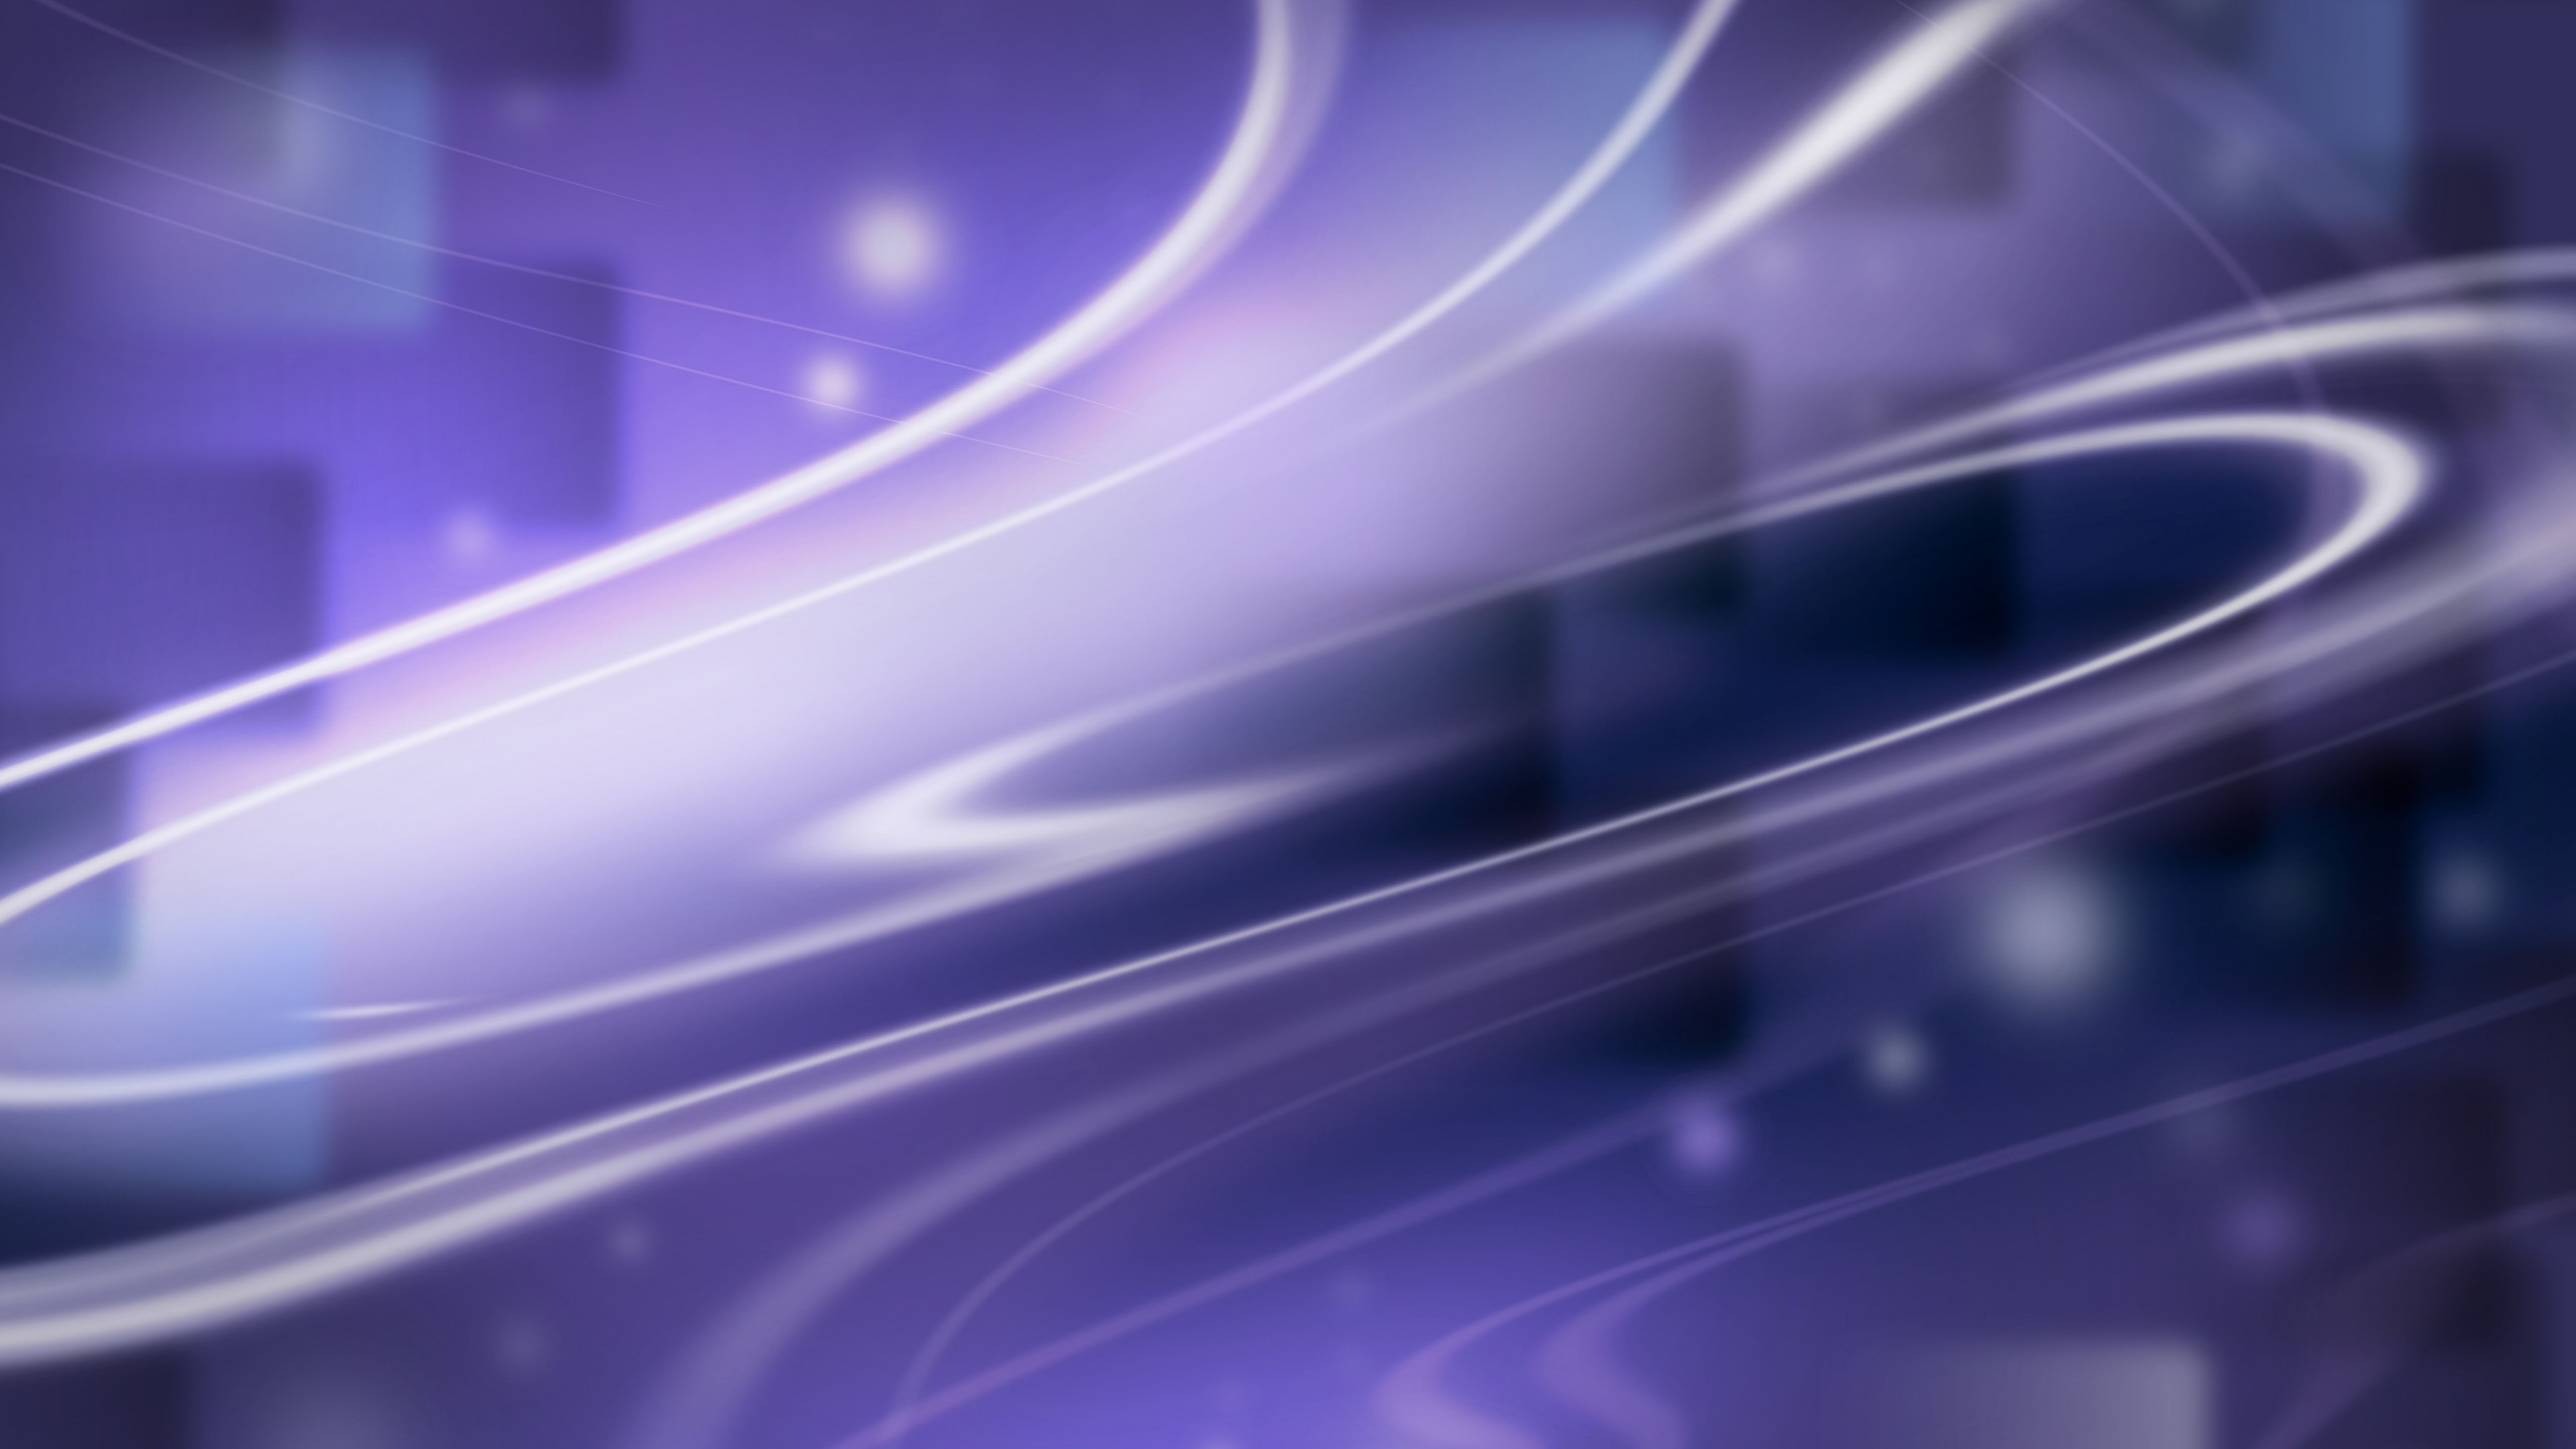 3840x2160  Wallpaper abstract, purple, white, lines